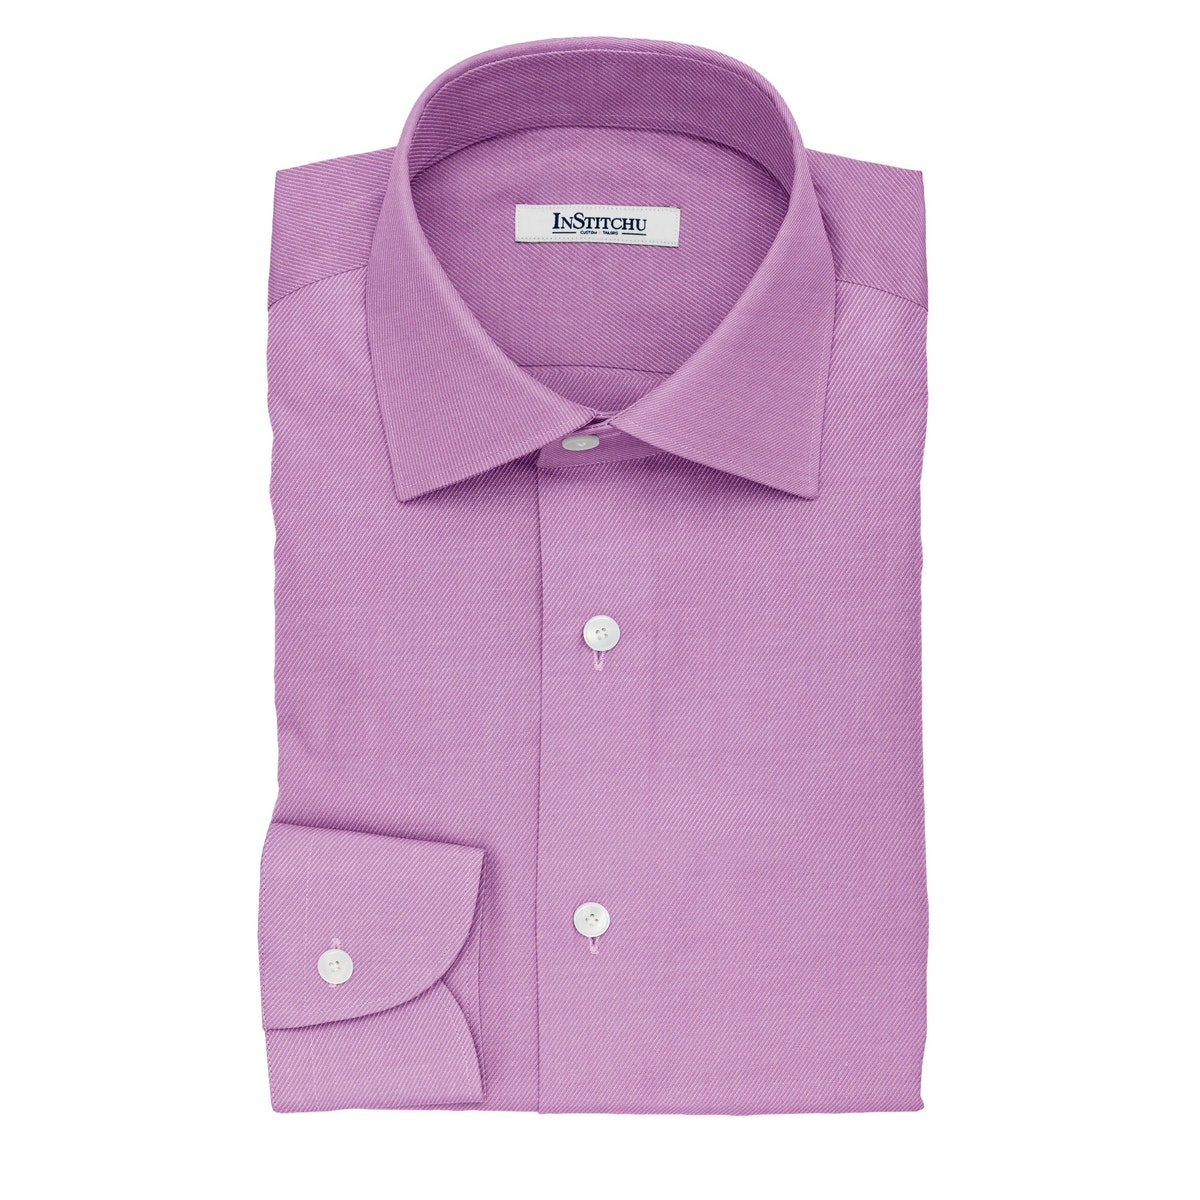 InStitchu Collection The Chesterton Purple and White Striped Cotton Shirt